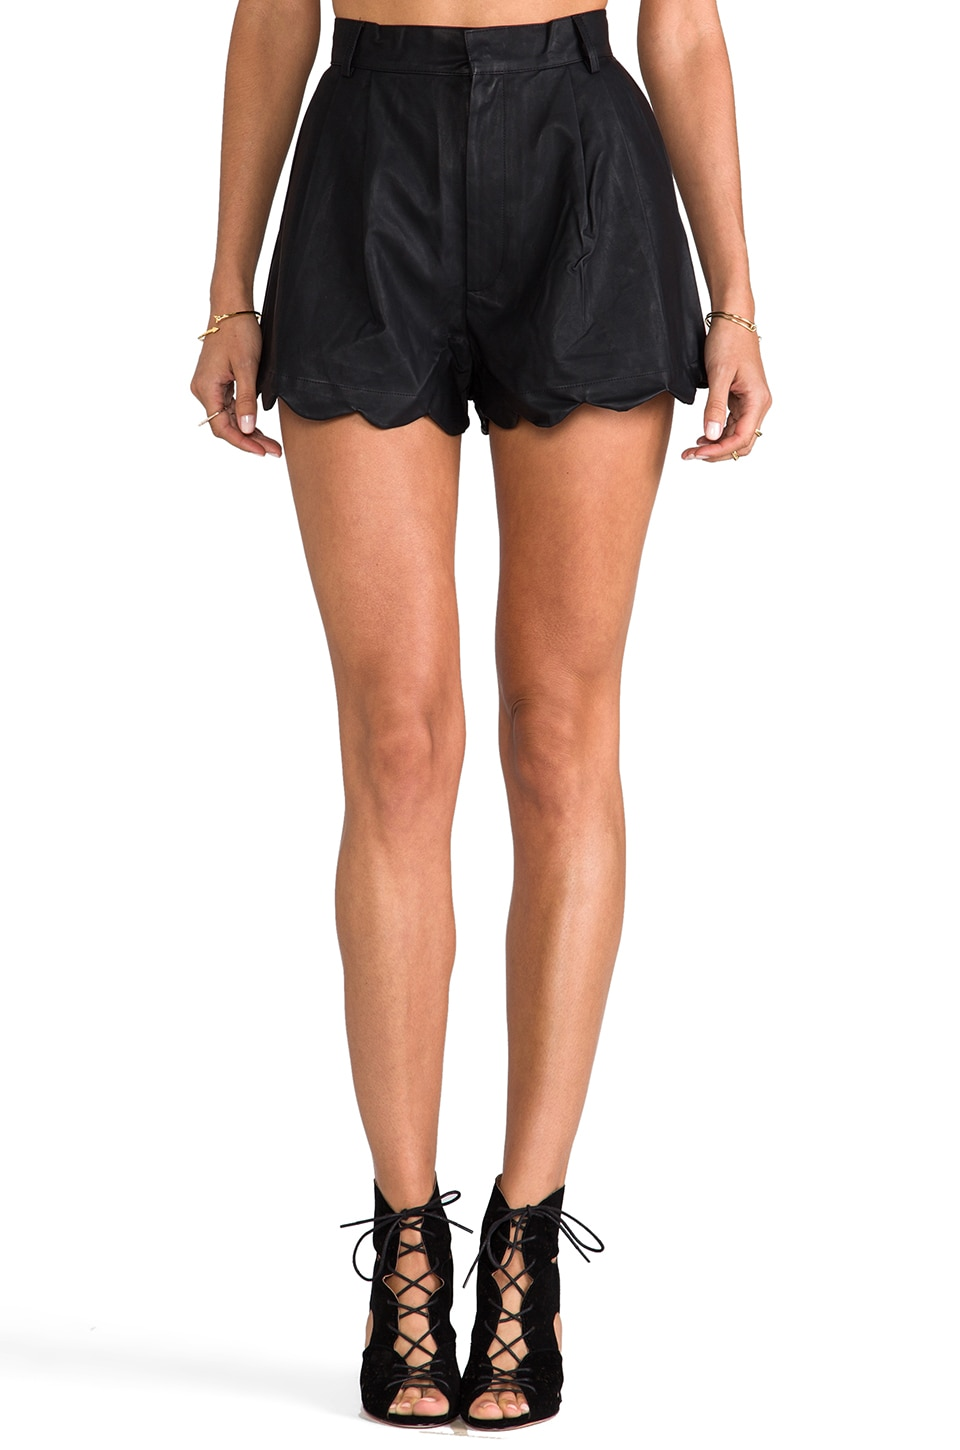 MINKPINK Sport Luxe High Waisted Scalloped Short in Black